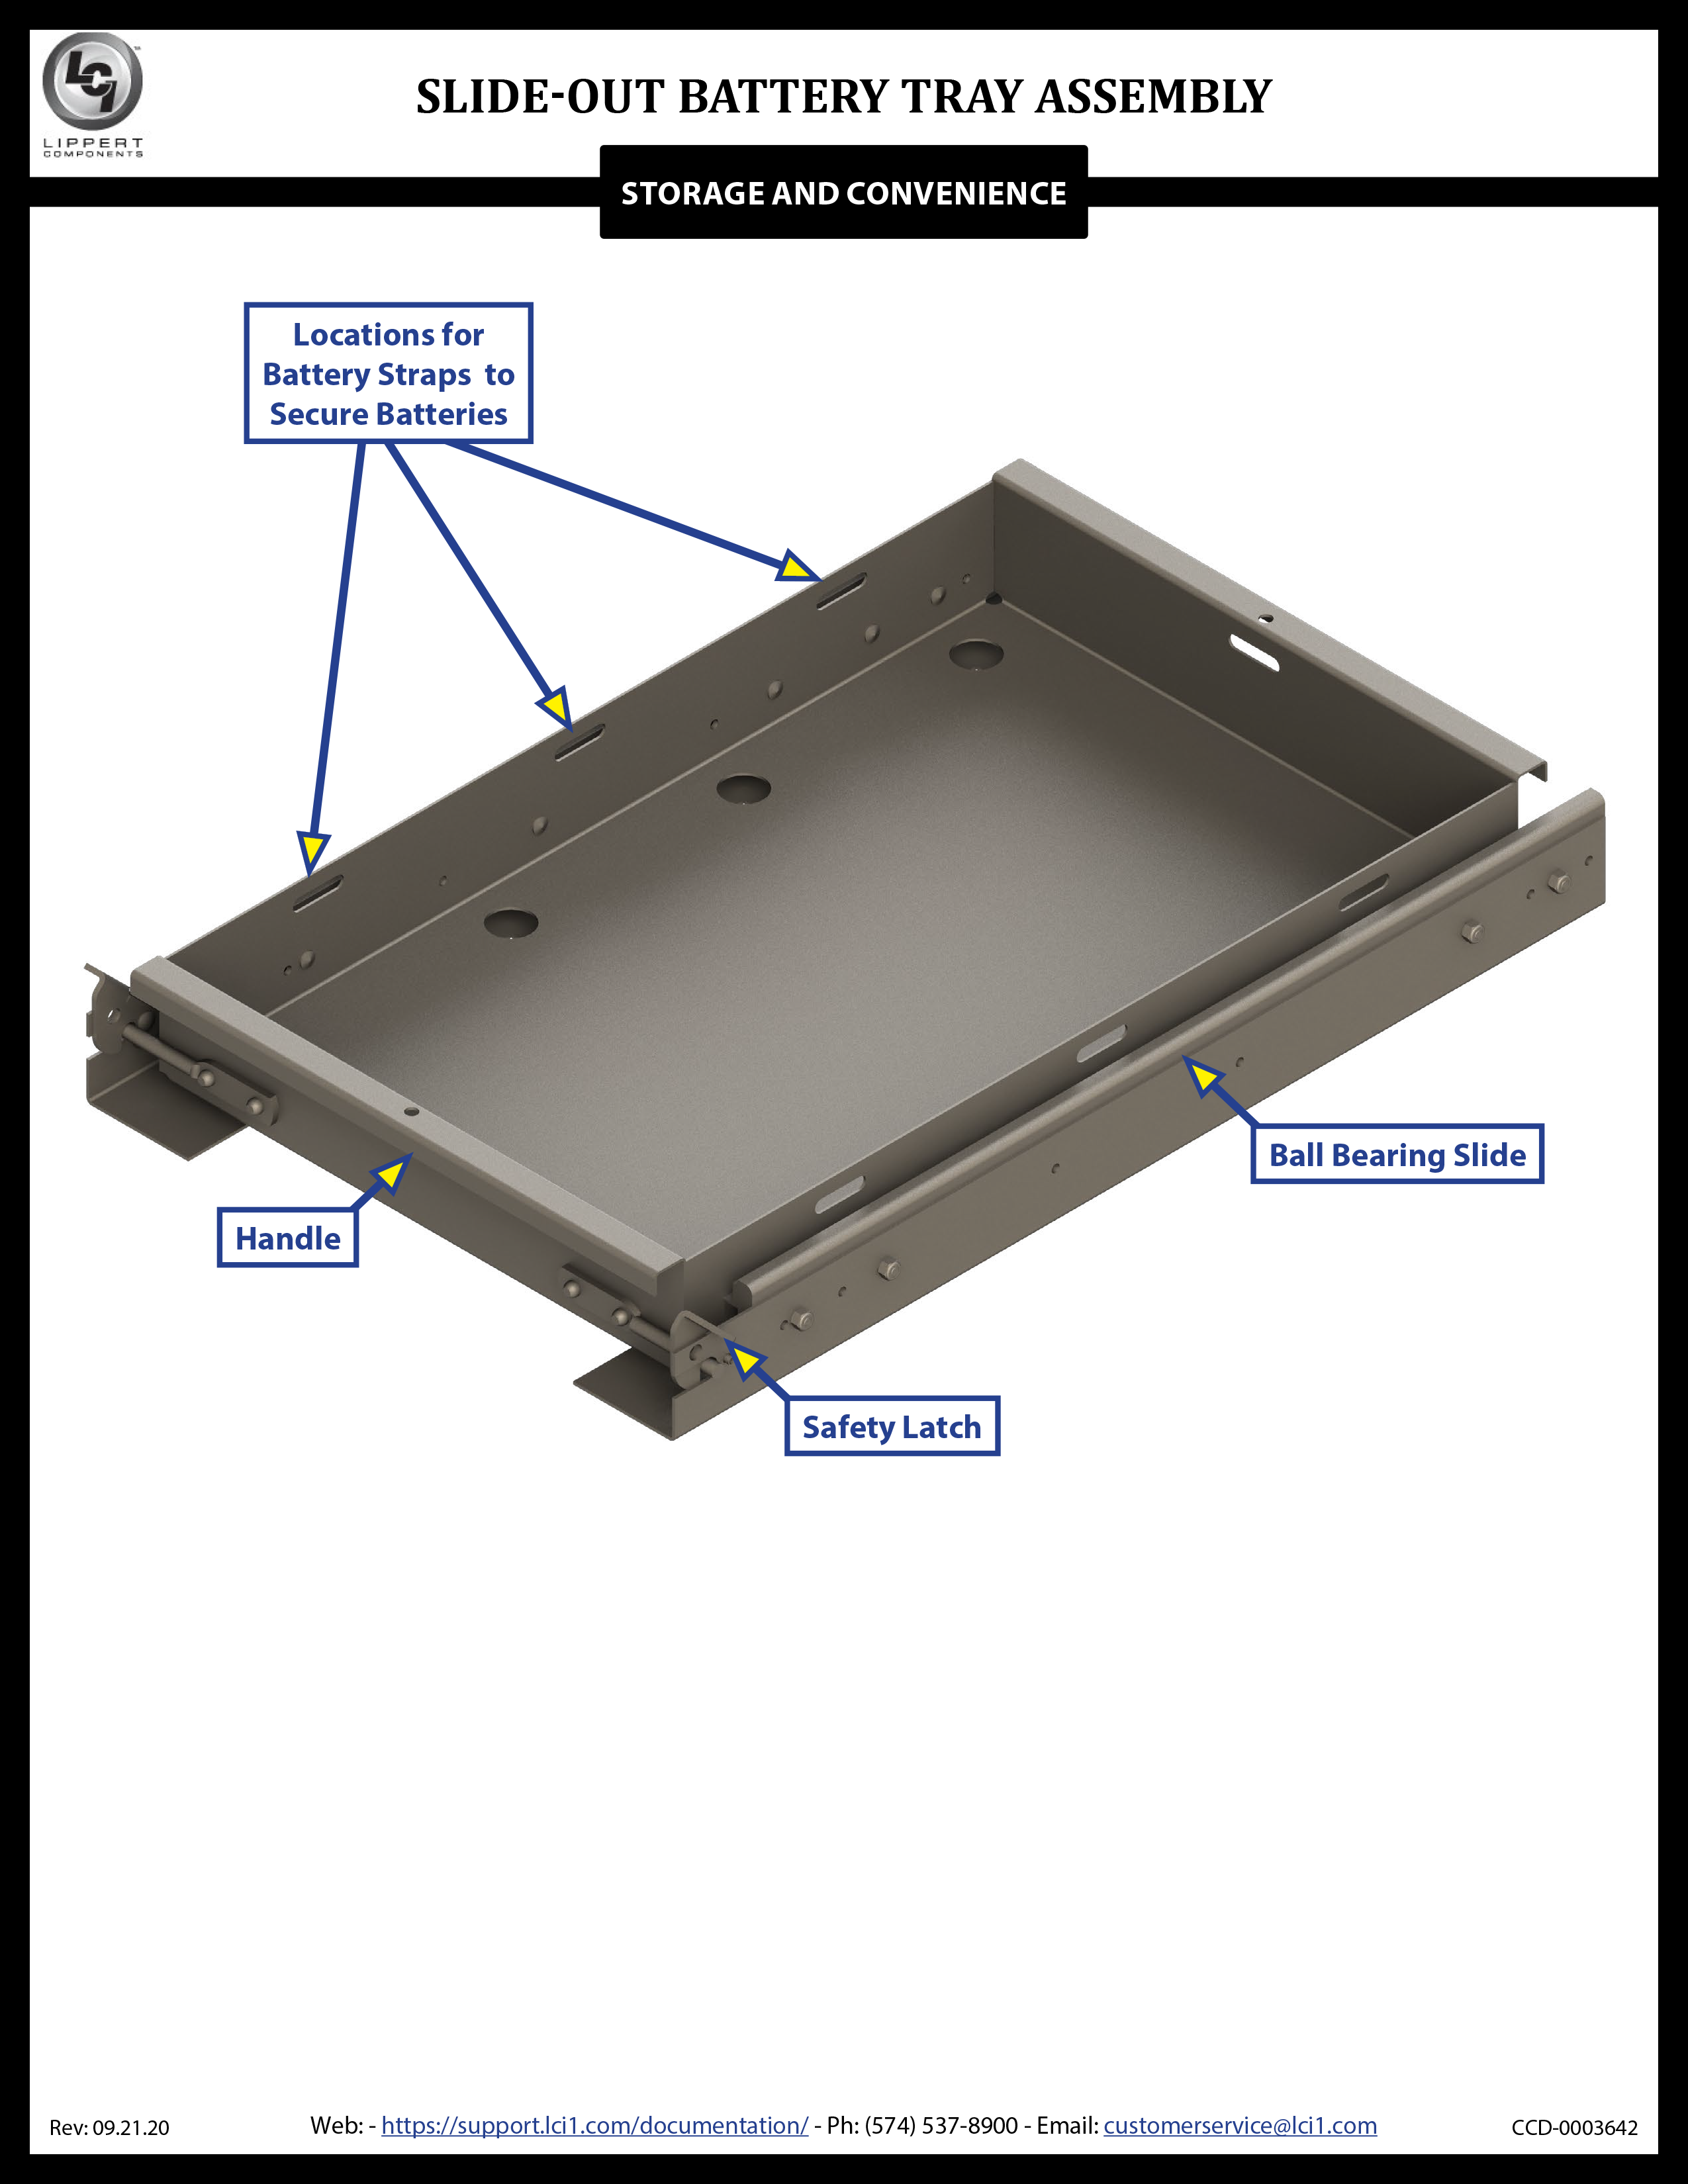 Slide-out Battery Tray Assembly